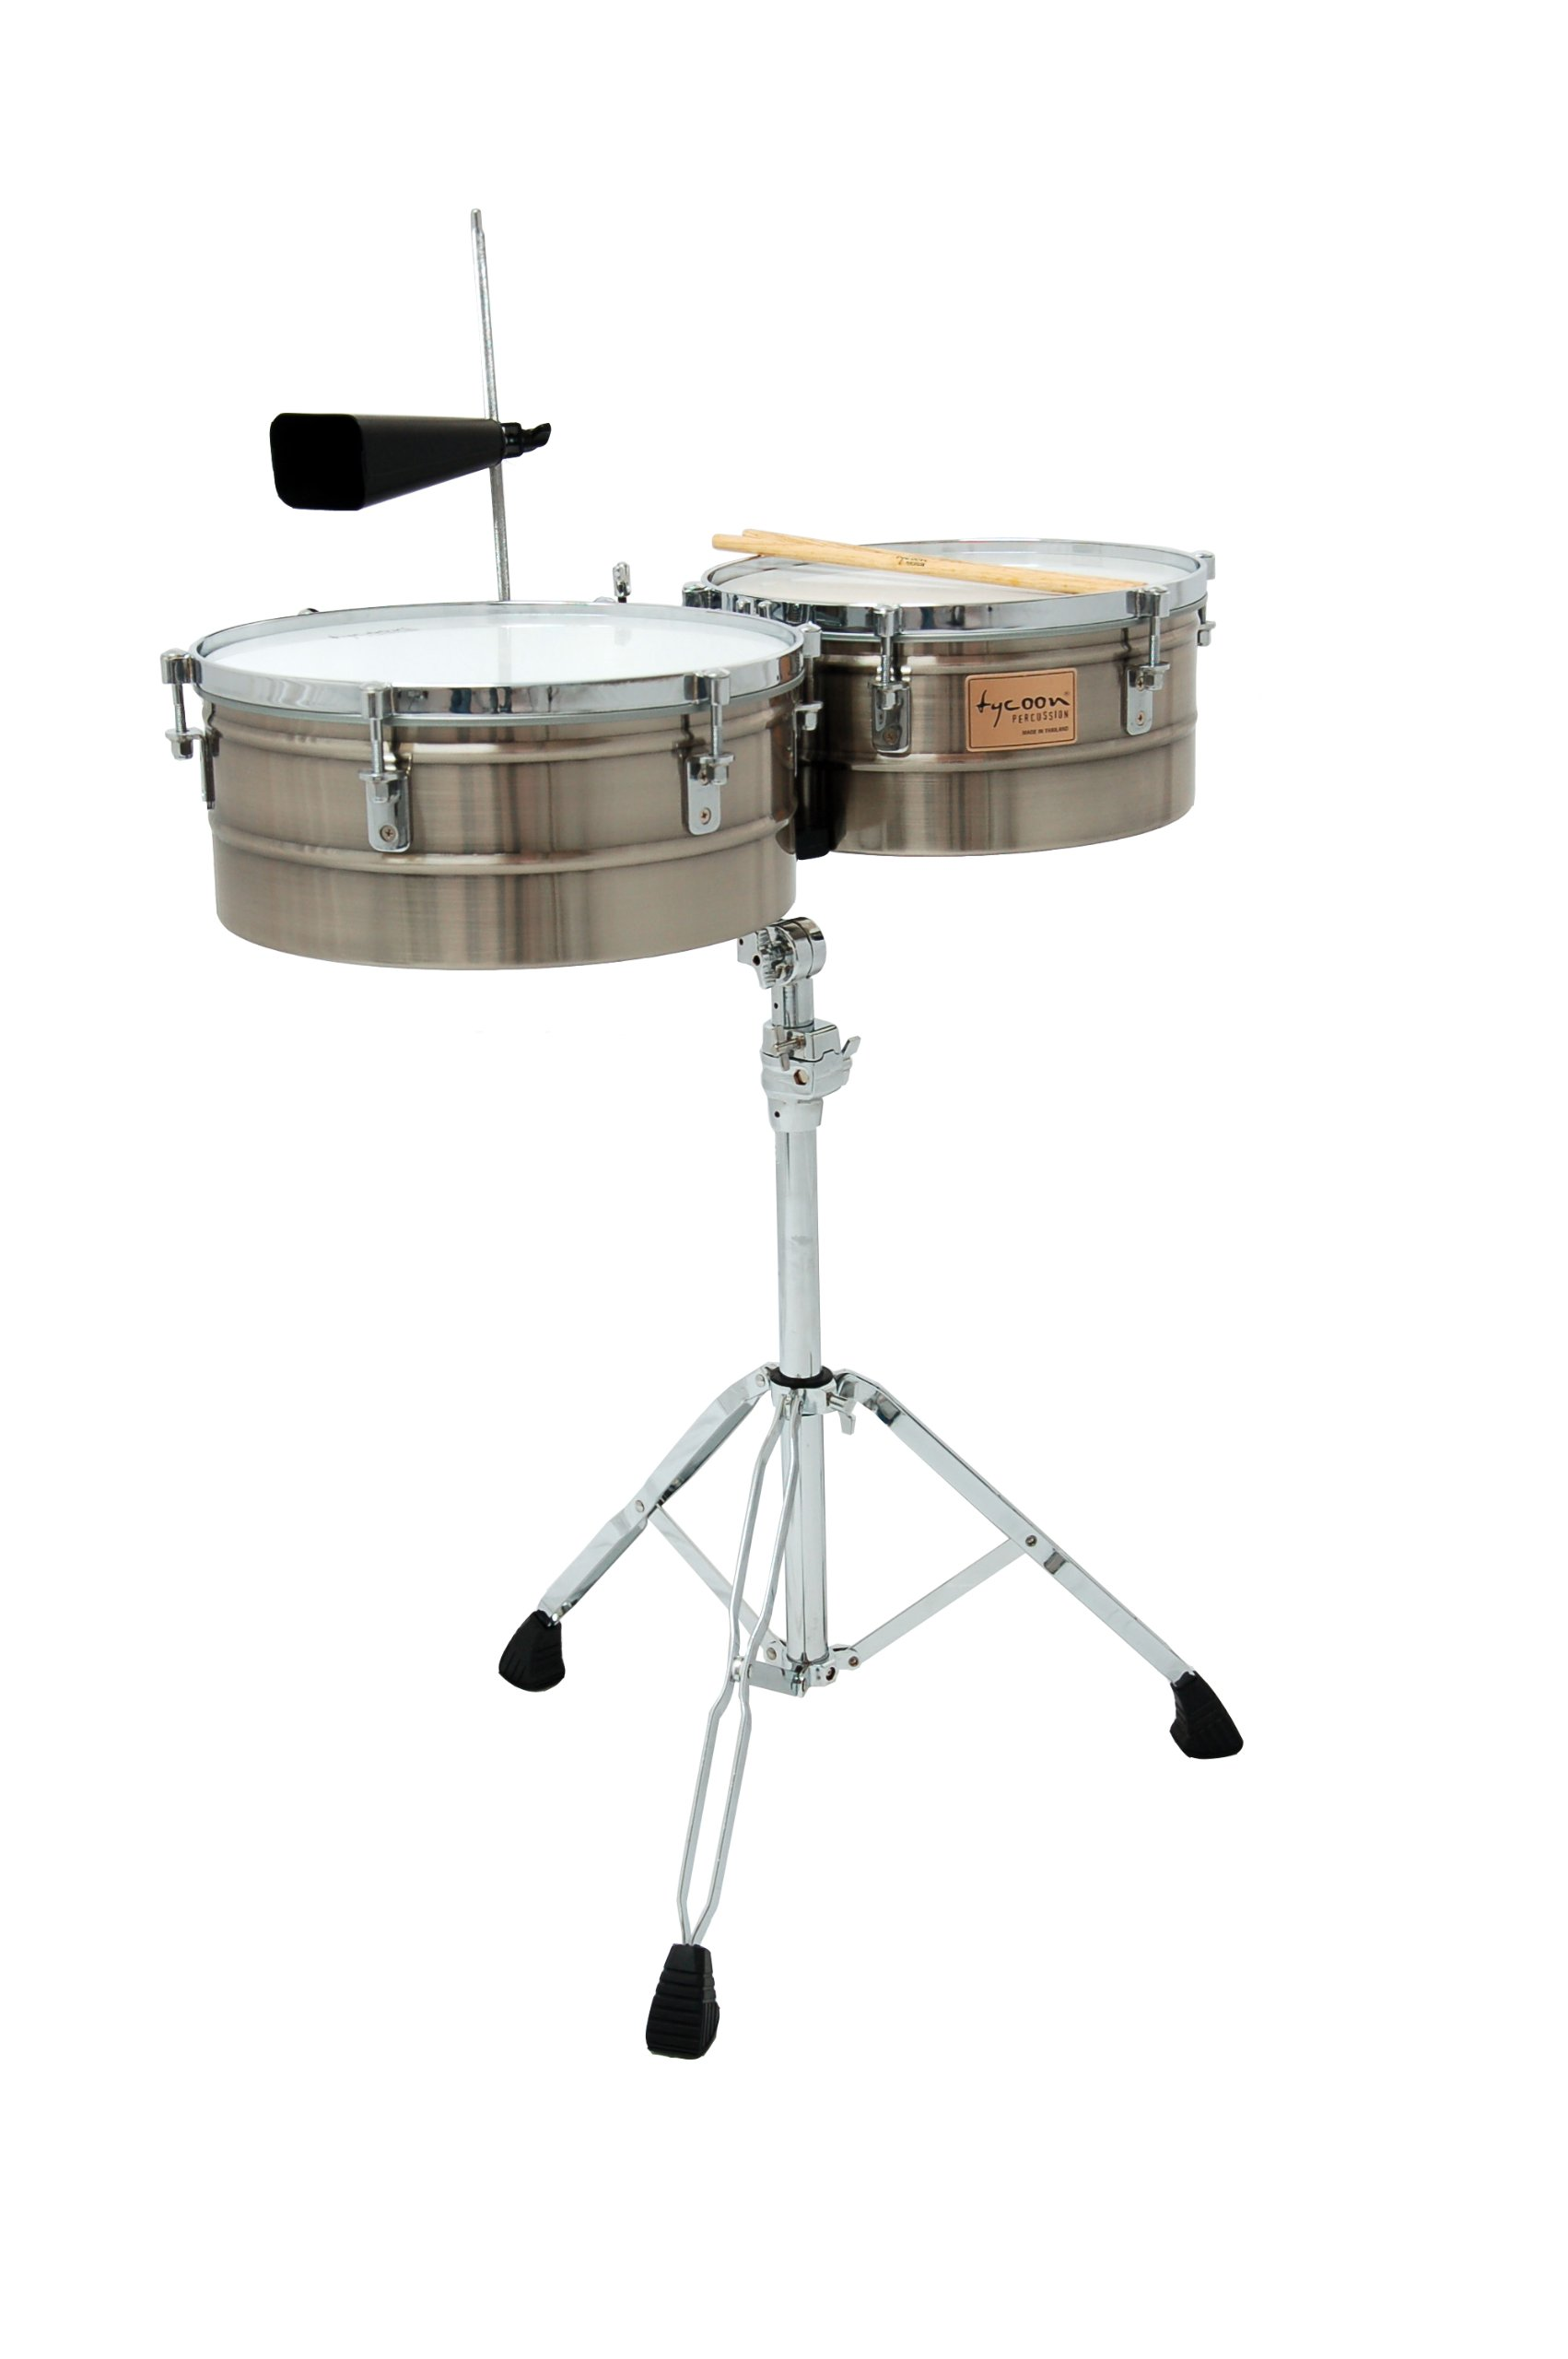 Tycoon Percussion 14 Inch & 15 Inch Brushed Chrome Shell Timbales by Tycoon Percussion